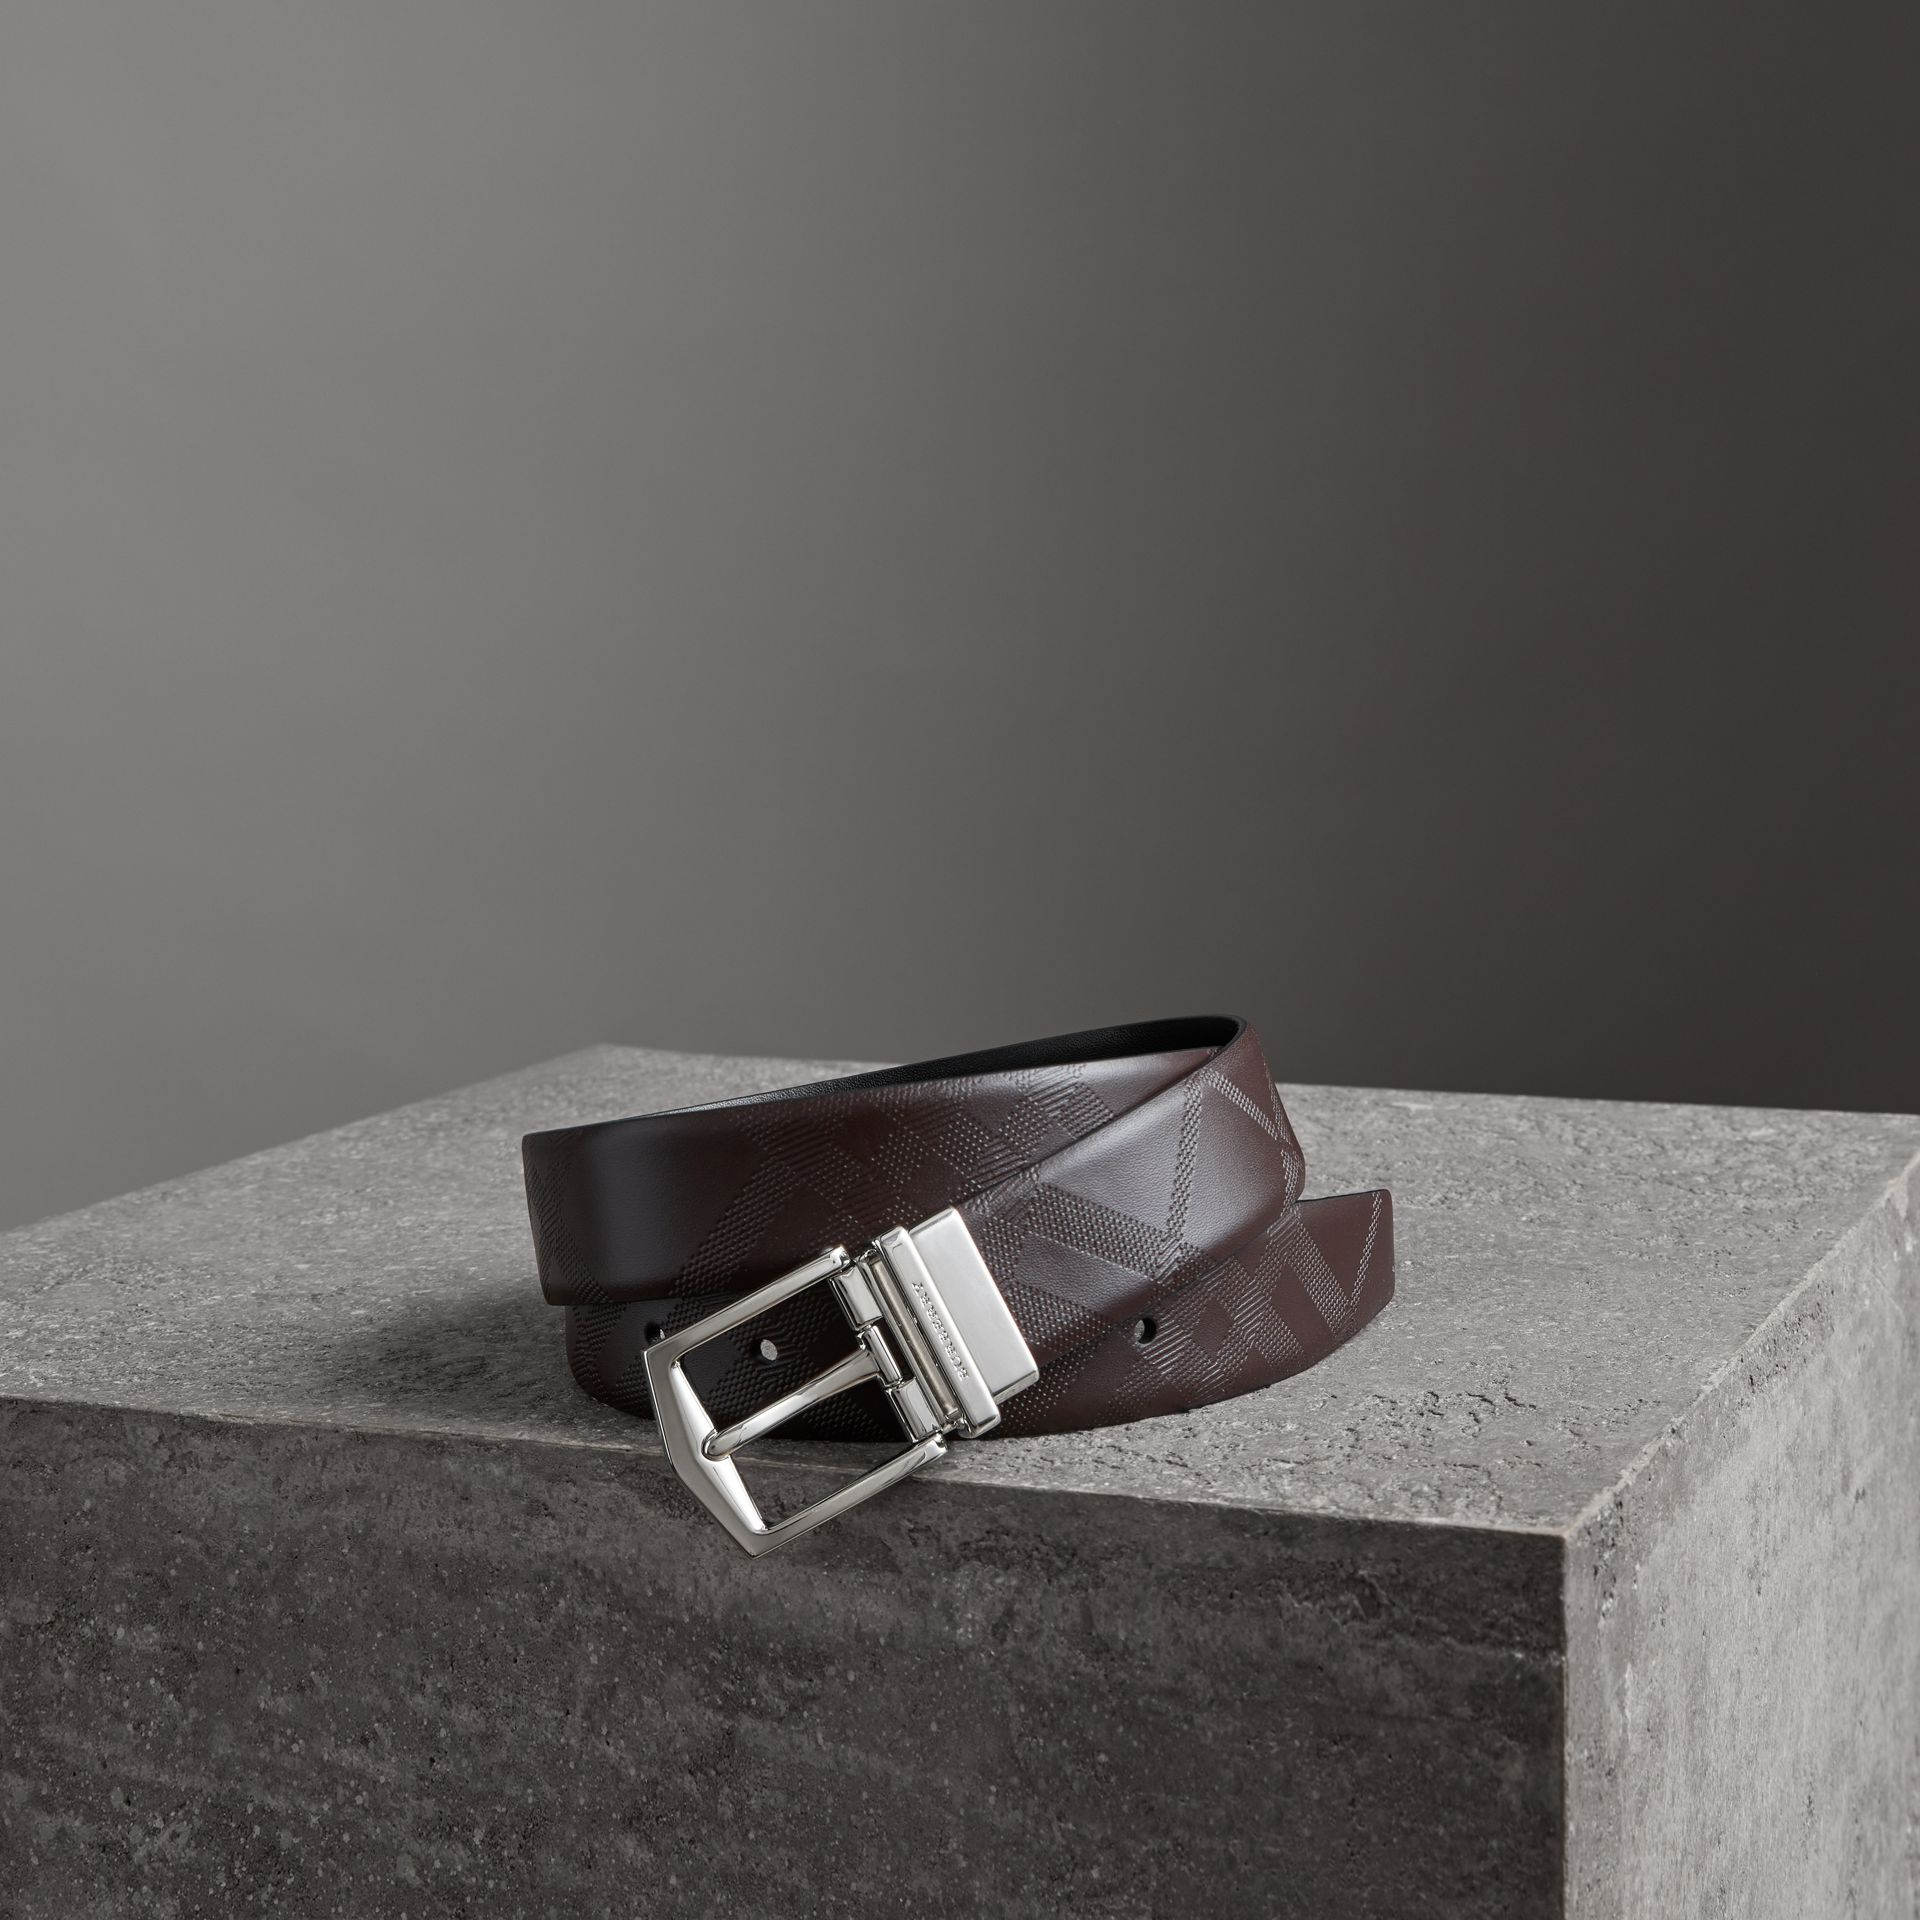 Ceinture réversible en cuir London (Marron Girofle Sombre/noir) - Homme | Burberry Canada - photo de la galerie 0